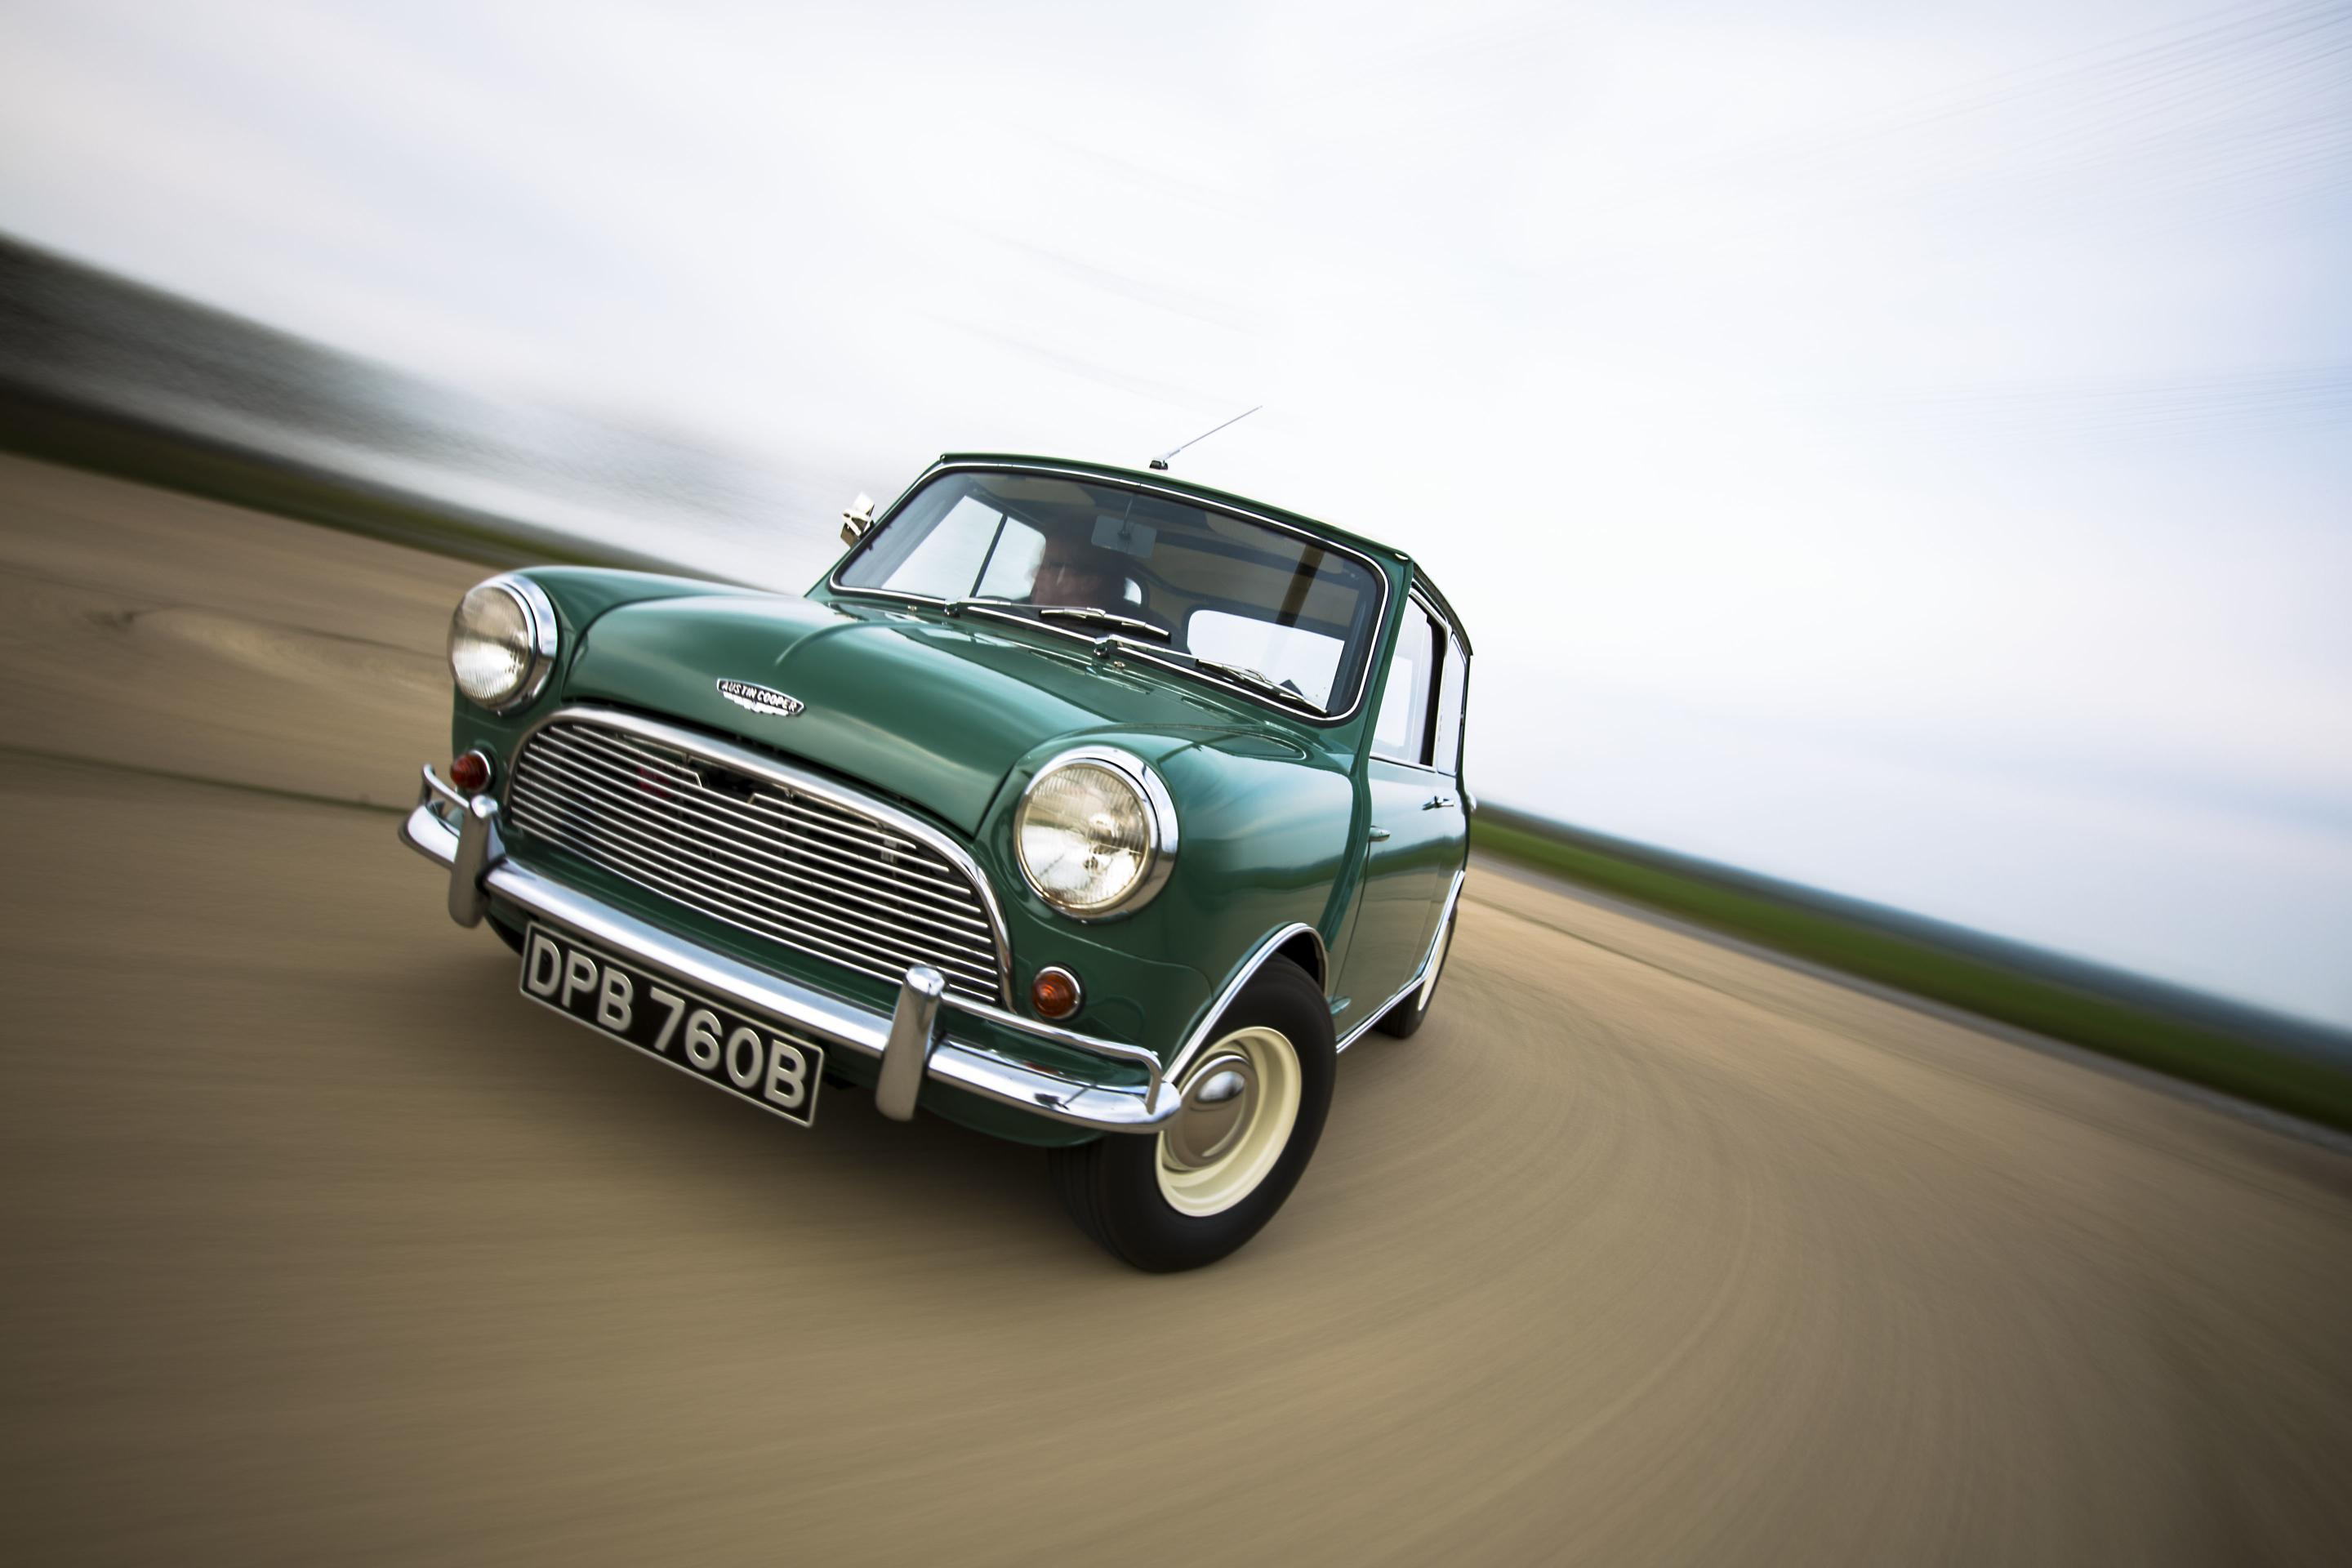 The Mini was the darling of the Swinging Sixties but when did its party finally come to an end?